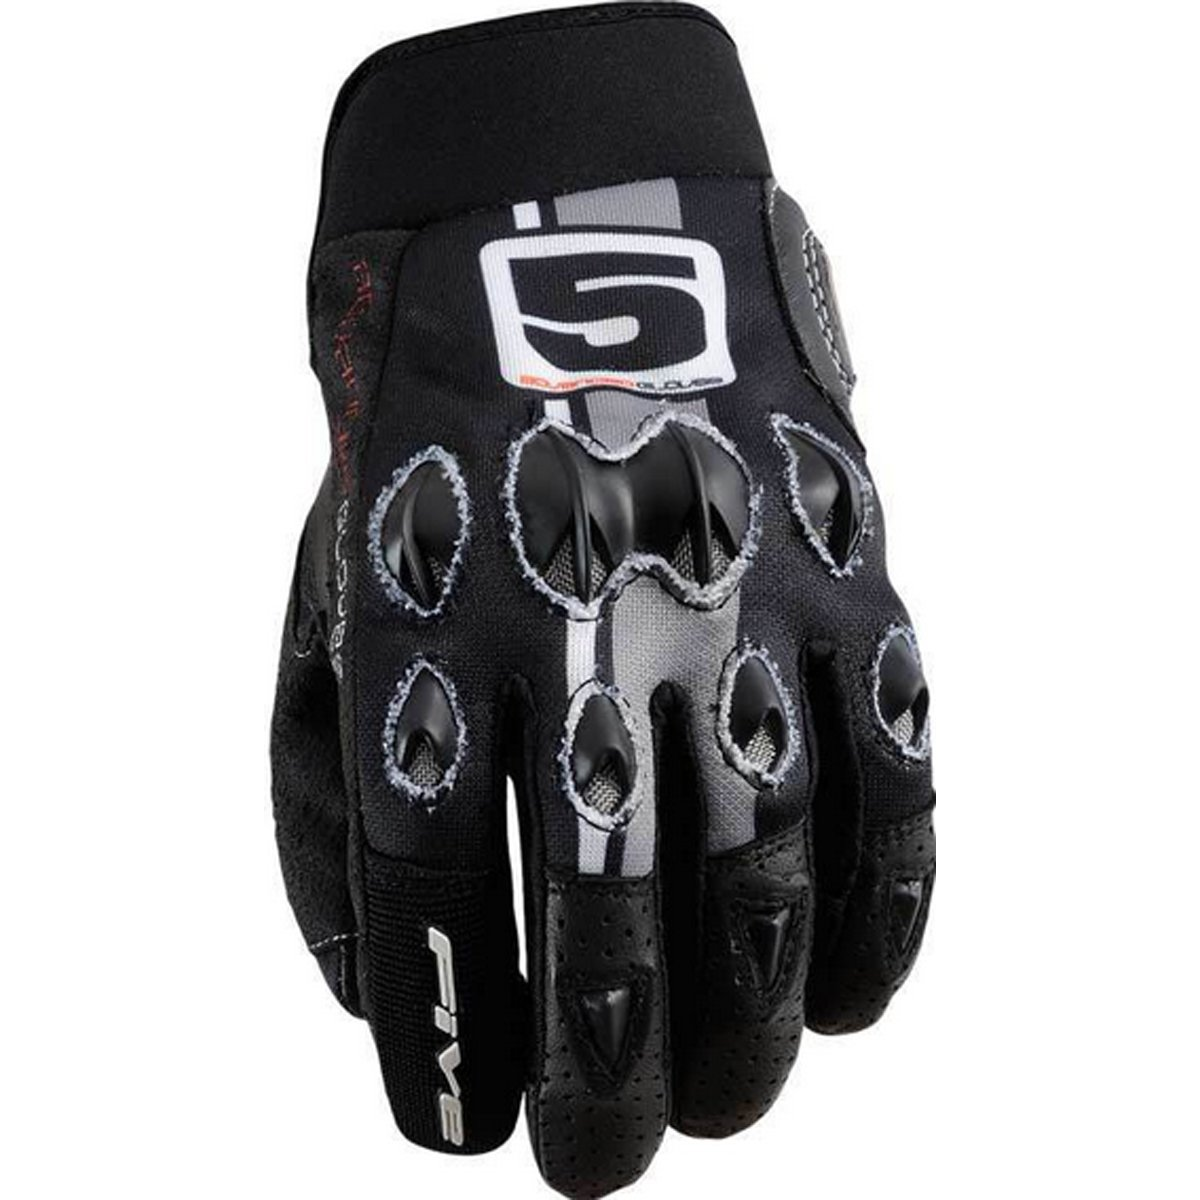 Five Stunt Replica Vintage Adult Street Motorcycle Gloves - Black/Grey / Medium 0